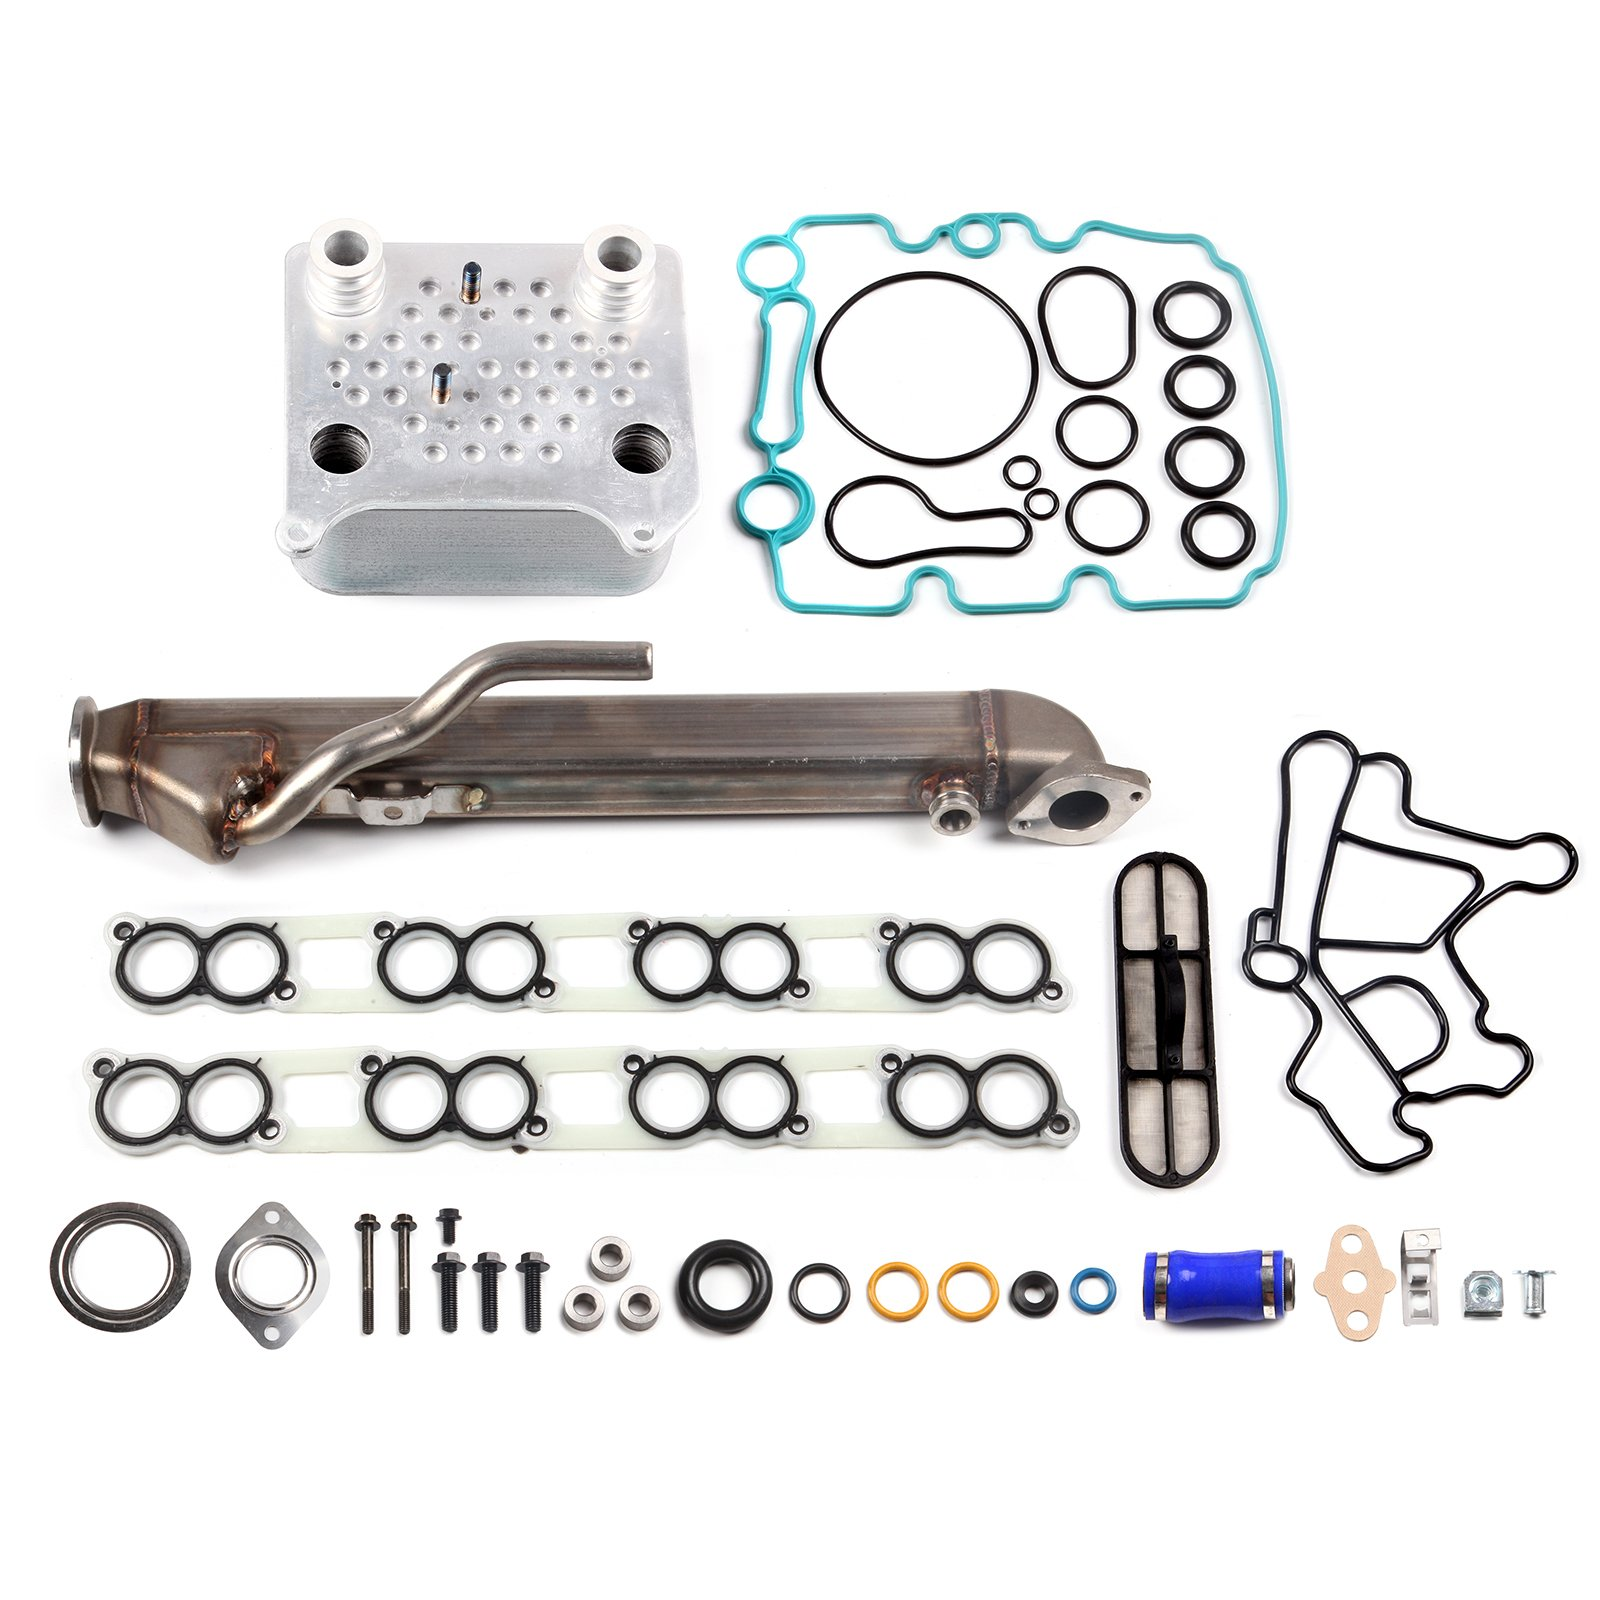 ECCPP EGR Cooler Kit Upgraded Oil Cooler Kit for 2004-2007 Ford F-250 F-350 E-350 Super Duty 6.0L by ECCPP